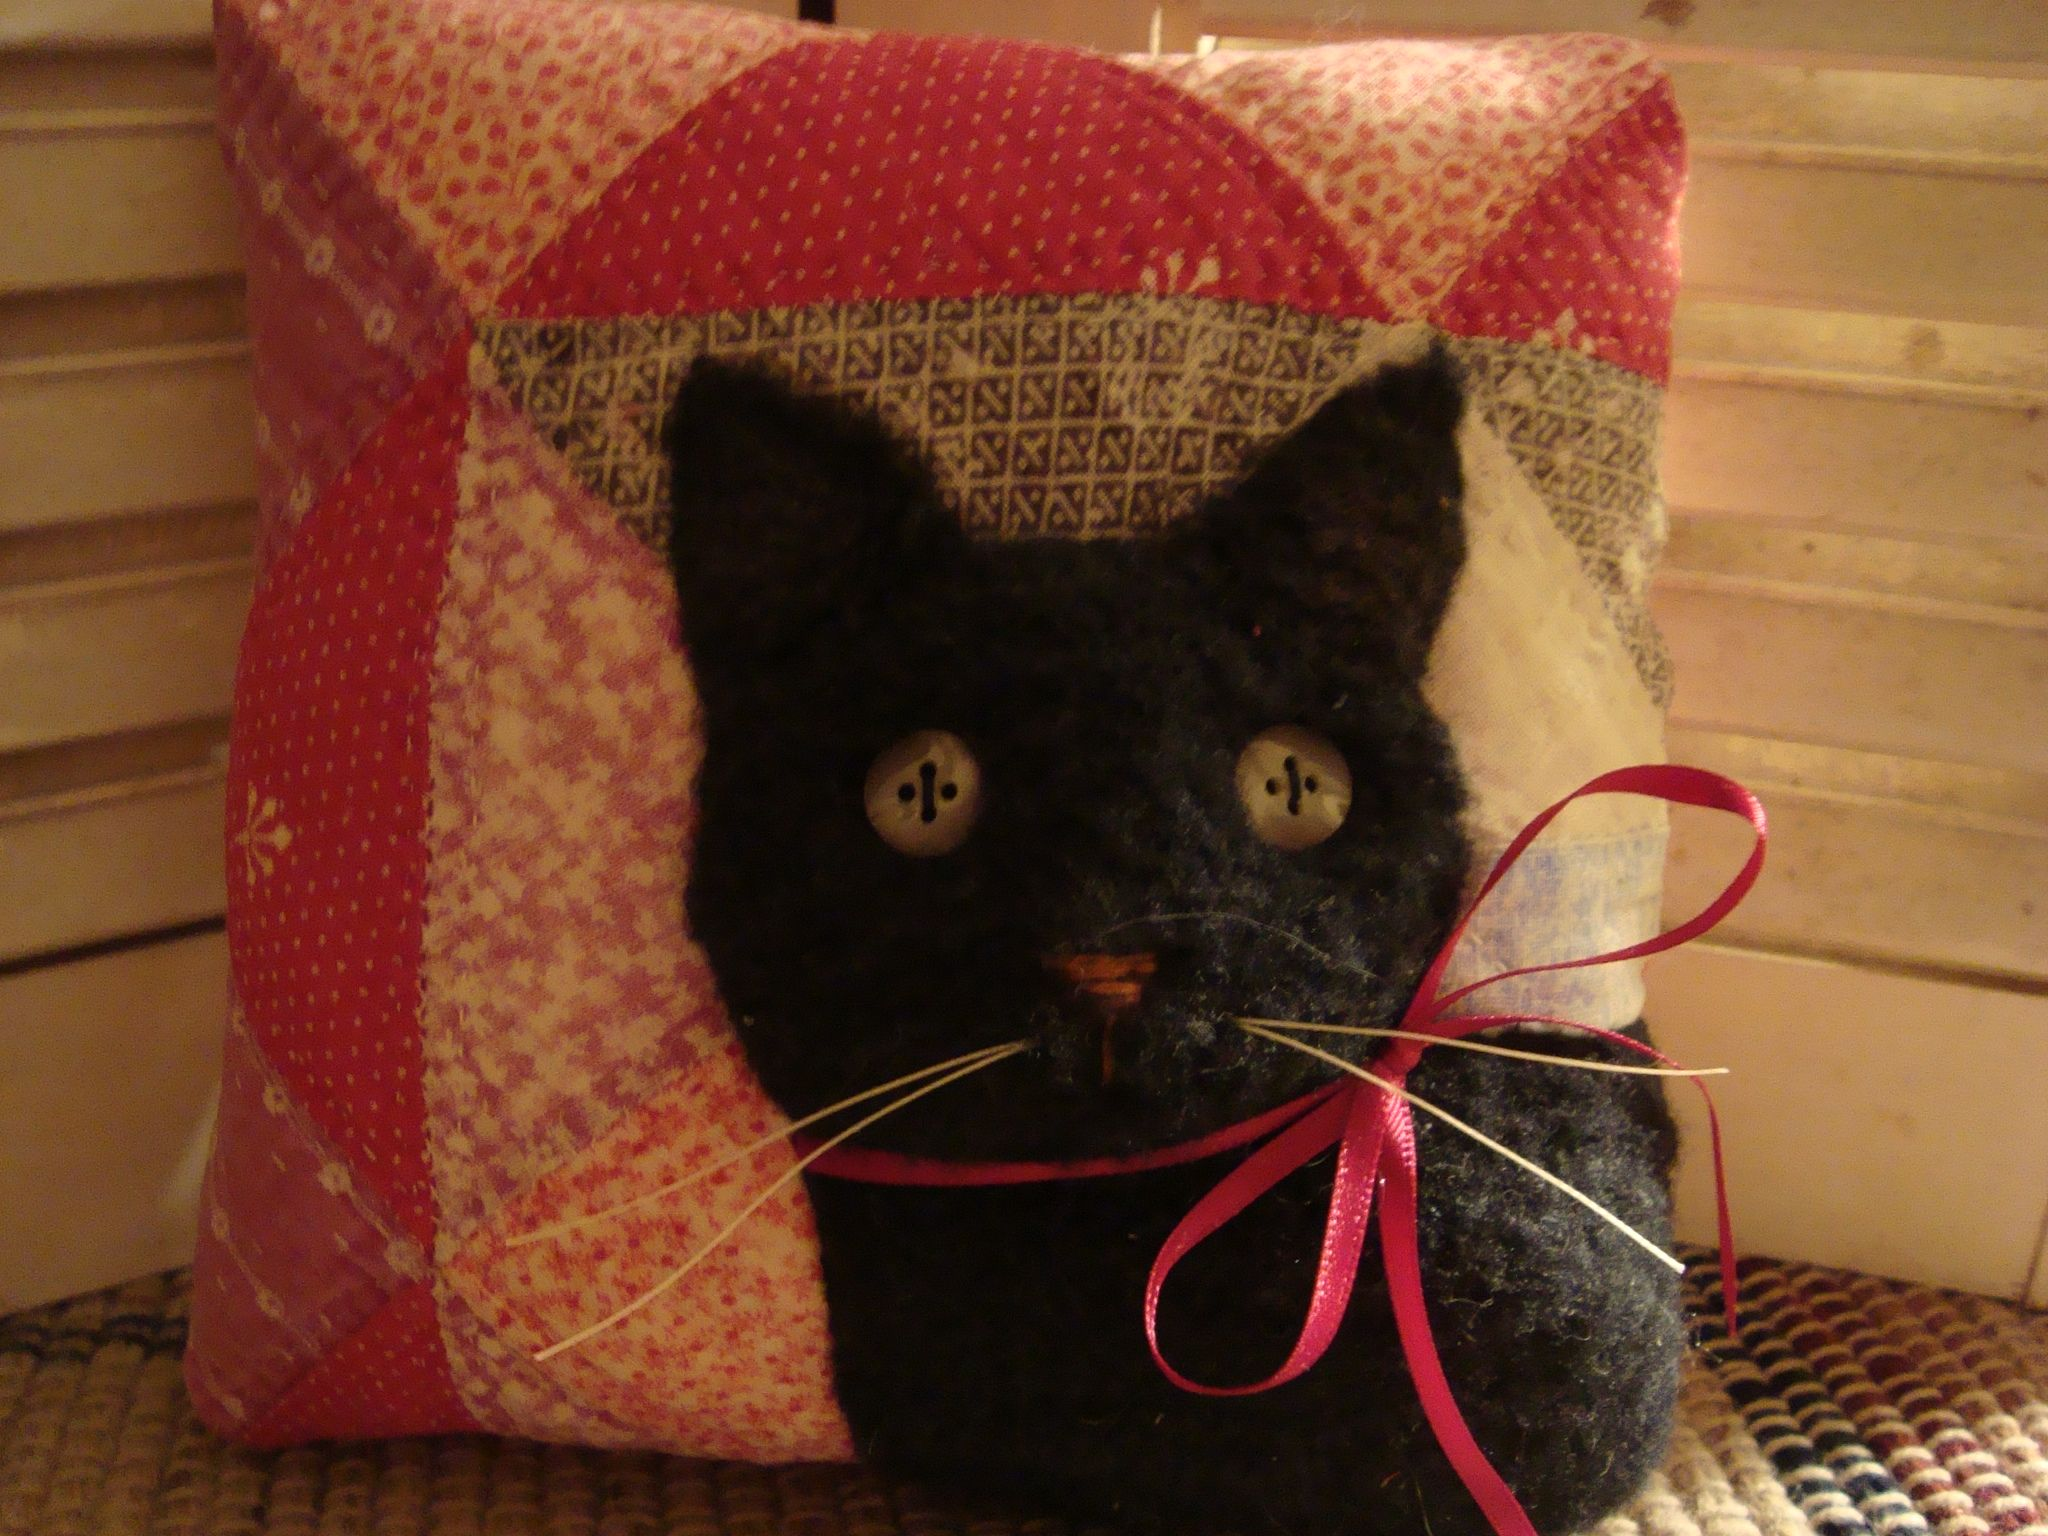 Animal Pillow Pinterest : Old Quilt Black Cat Pillow Antique Quilt Animal Pillows Pinterest Black cats, Pillows and Cat